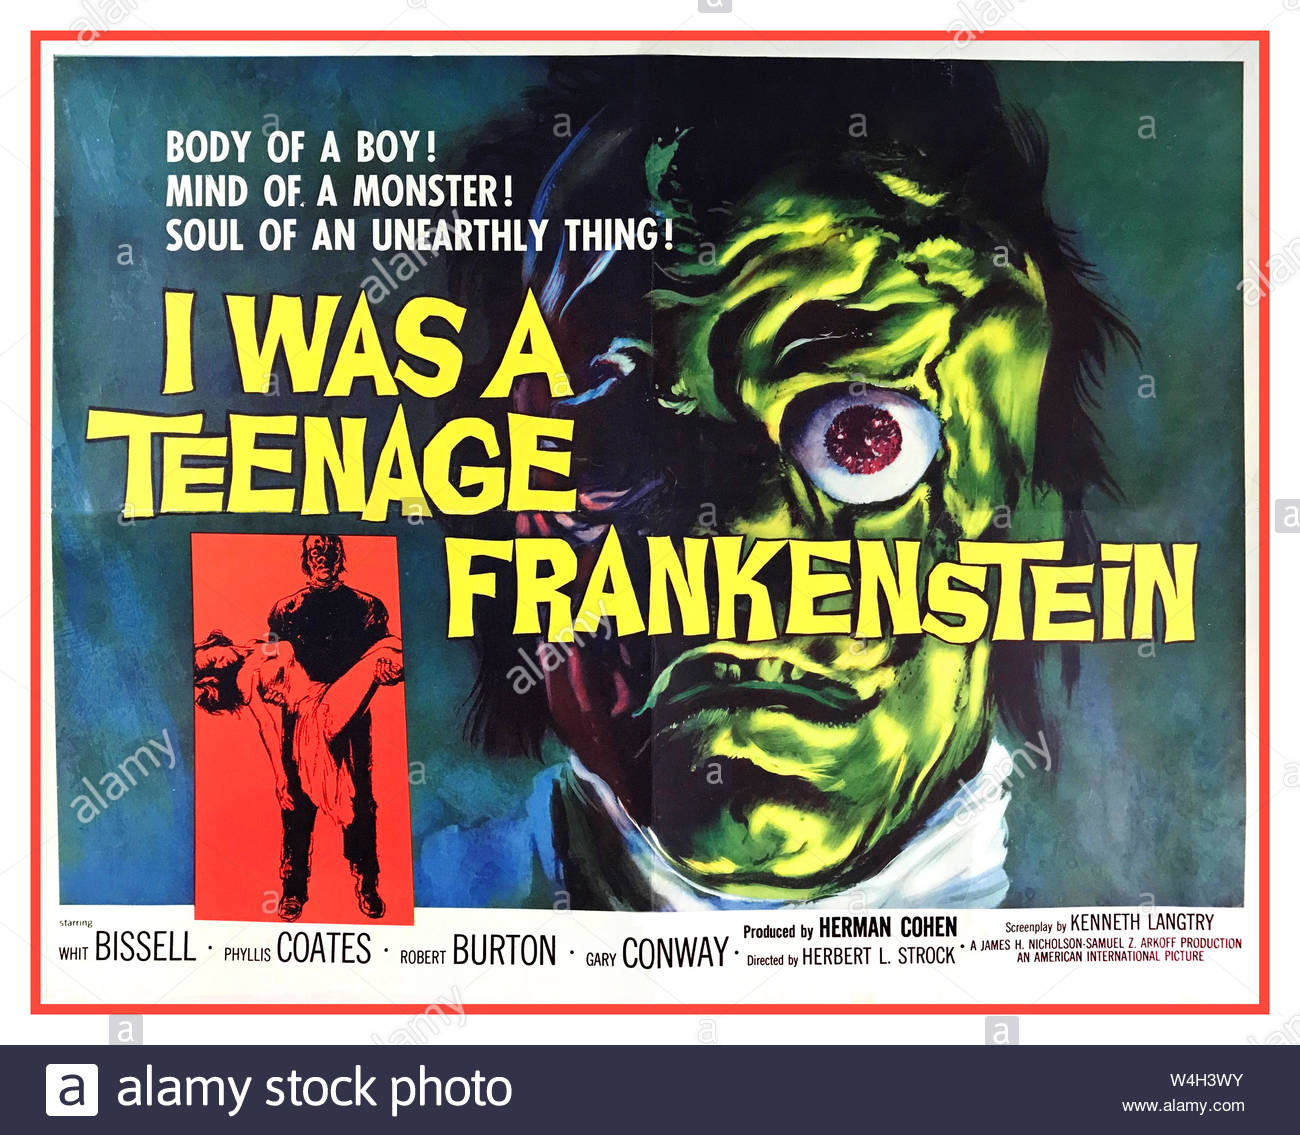 vintage 1950s horror film movie poster i was a teenage frankenstein 1957 original movie poster starring whit bissell phyllis coates robert burton and gary conway directed by herbert l strock and produced by herman cohen body of a boy mind of a monster soul of an unearthly thing W4H3WY